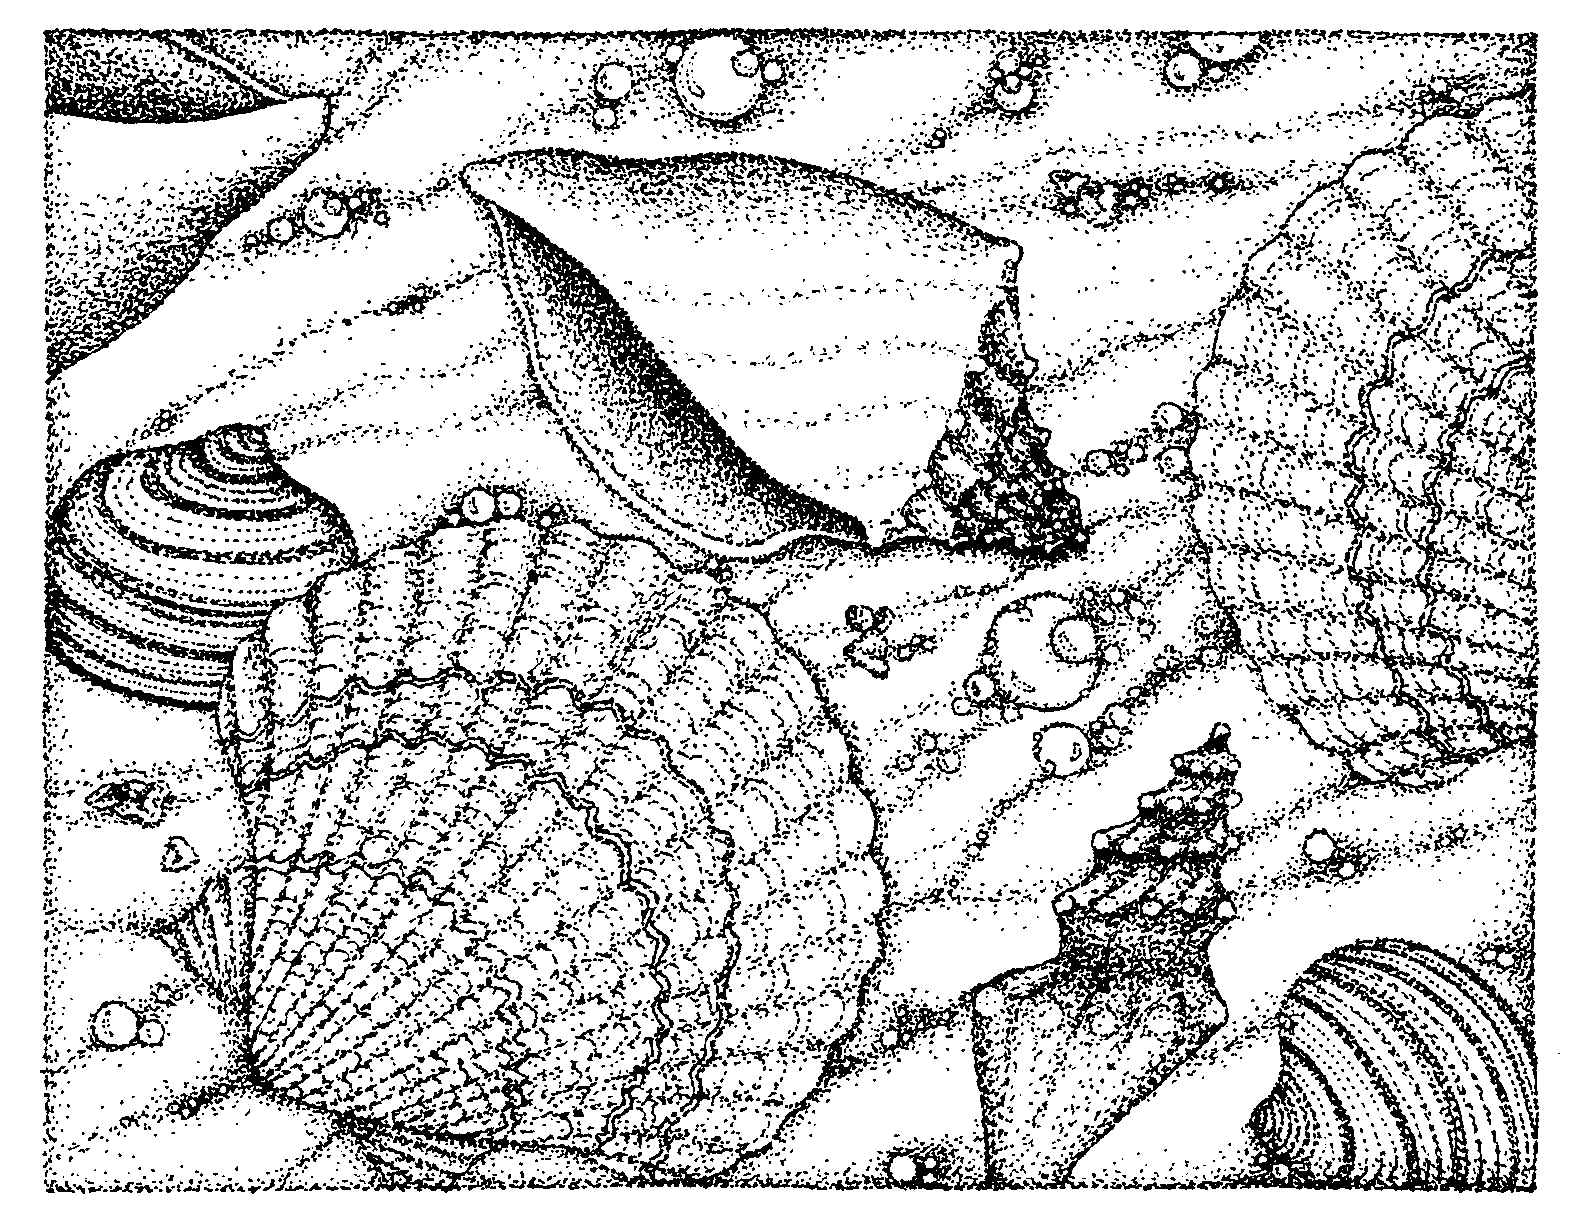 coloring pages sea shells - inkspired musings comments seashells and coloring books